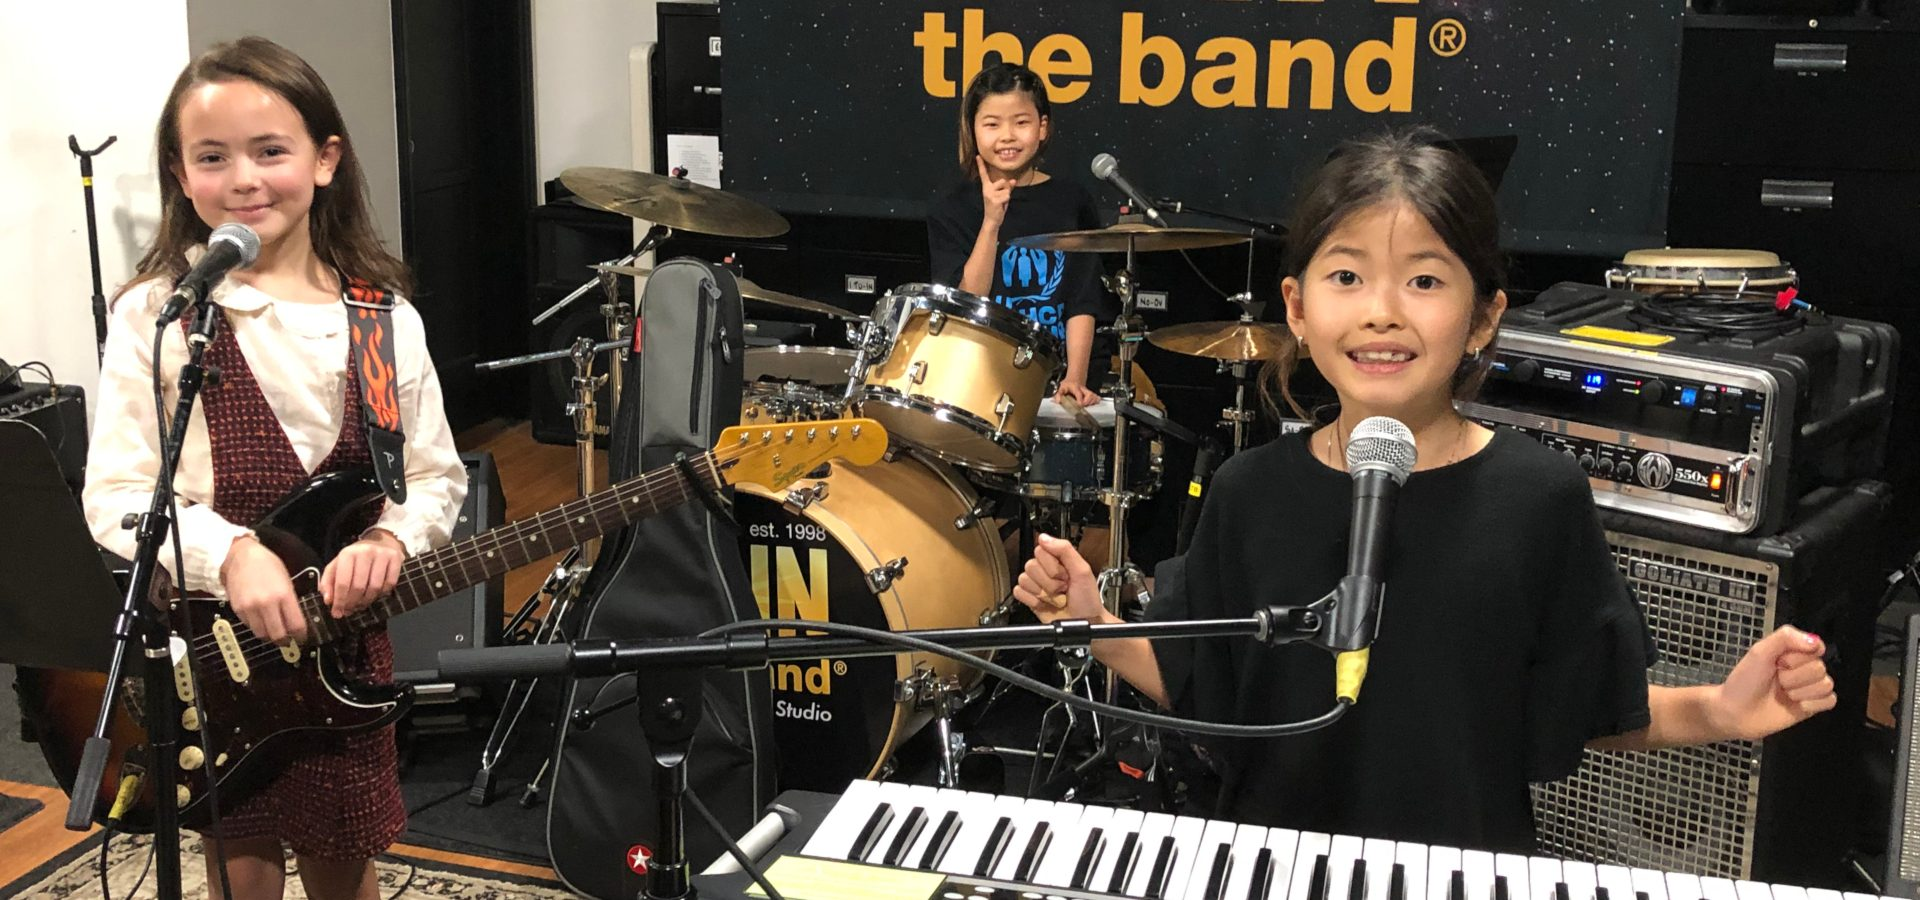 Kids Rock Band - Music Camp - Sherman Oaks, Los Angeles - Join The Band